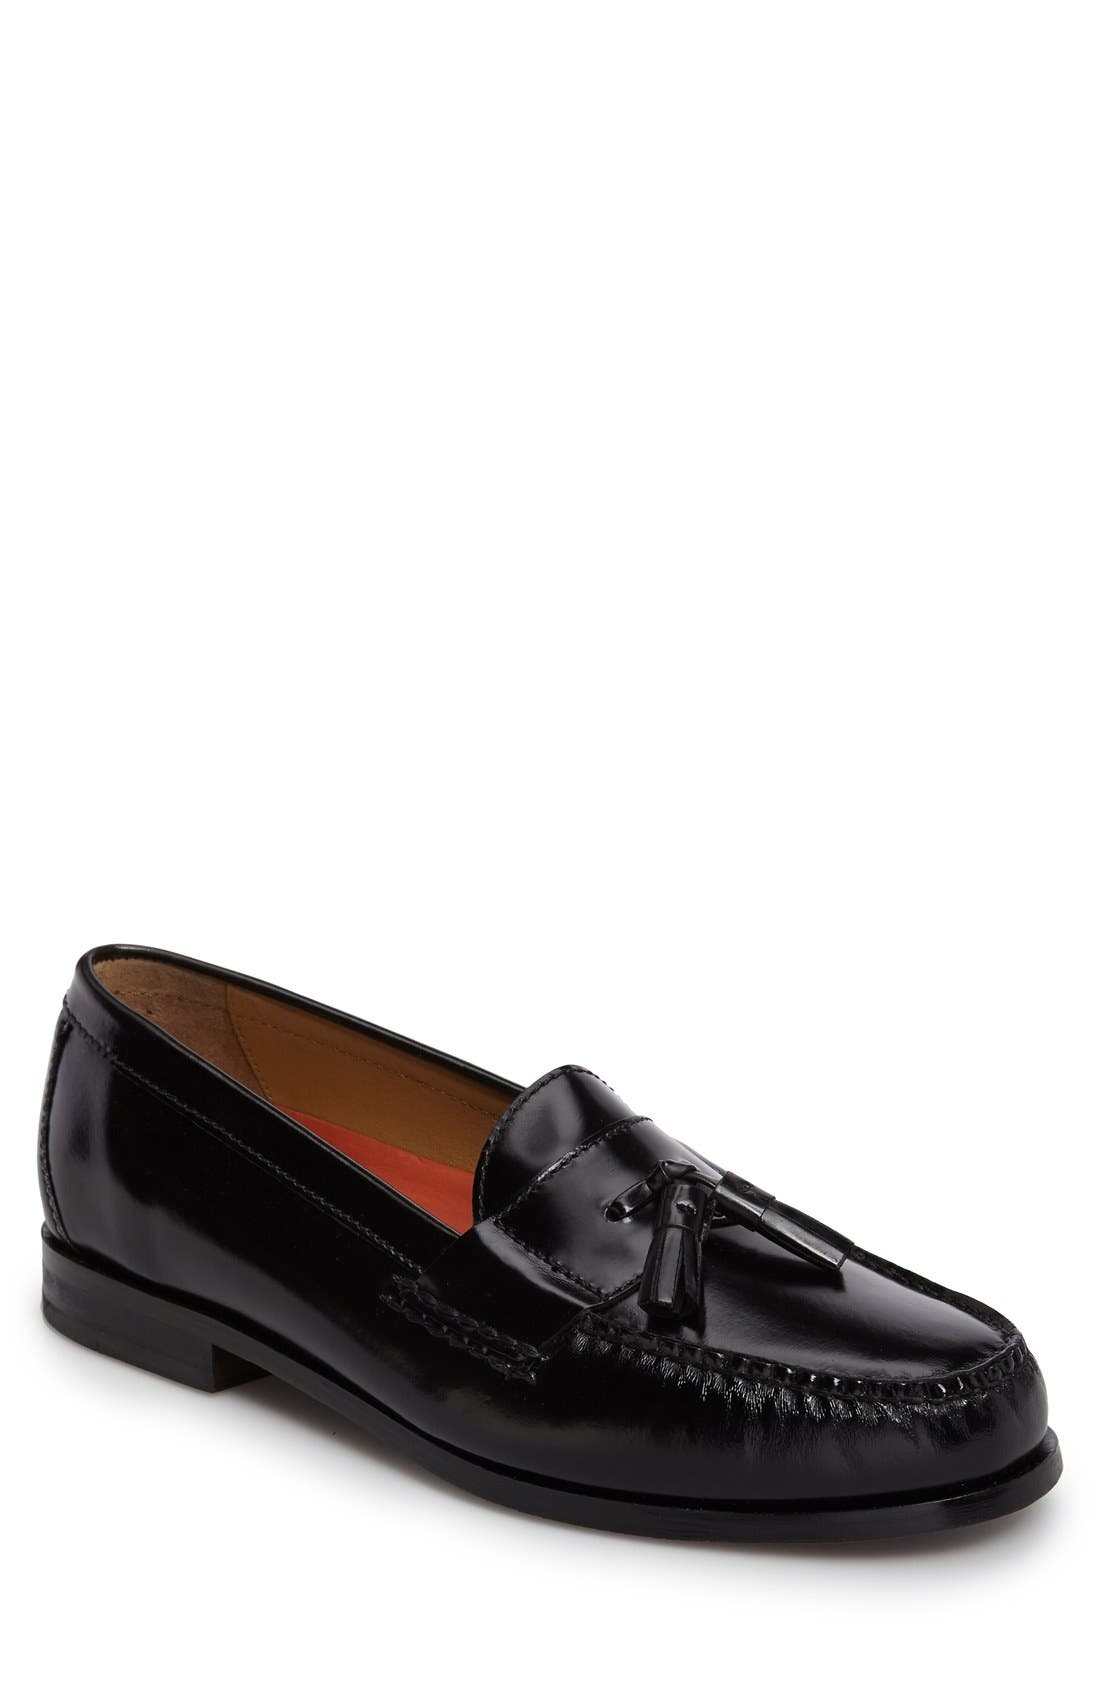 COLE HAAN 'Pinch Grand' Tassel Loafer